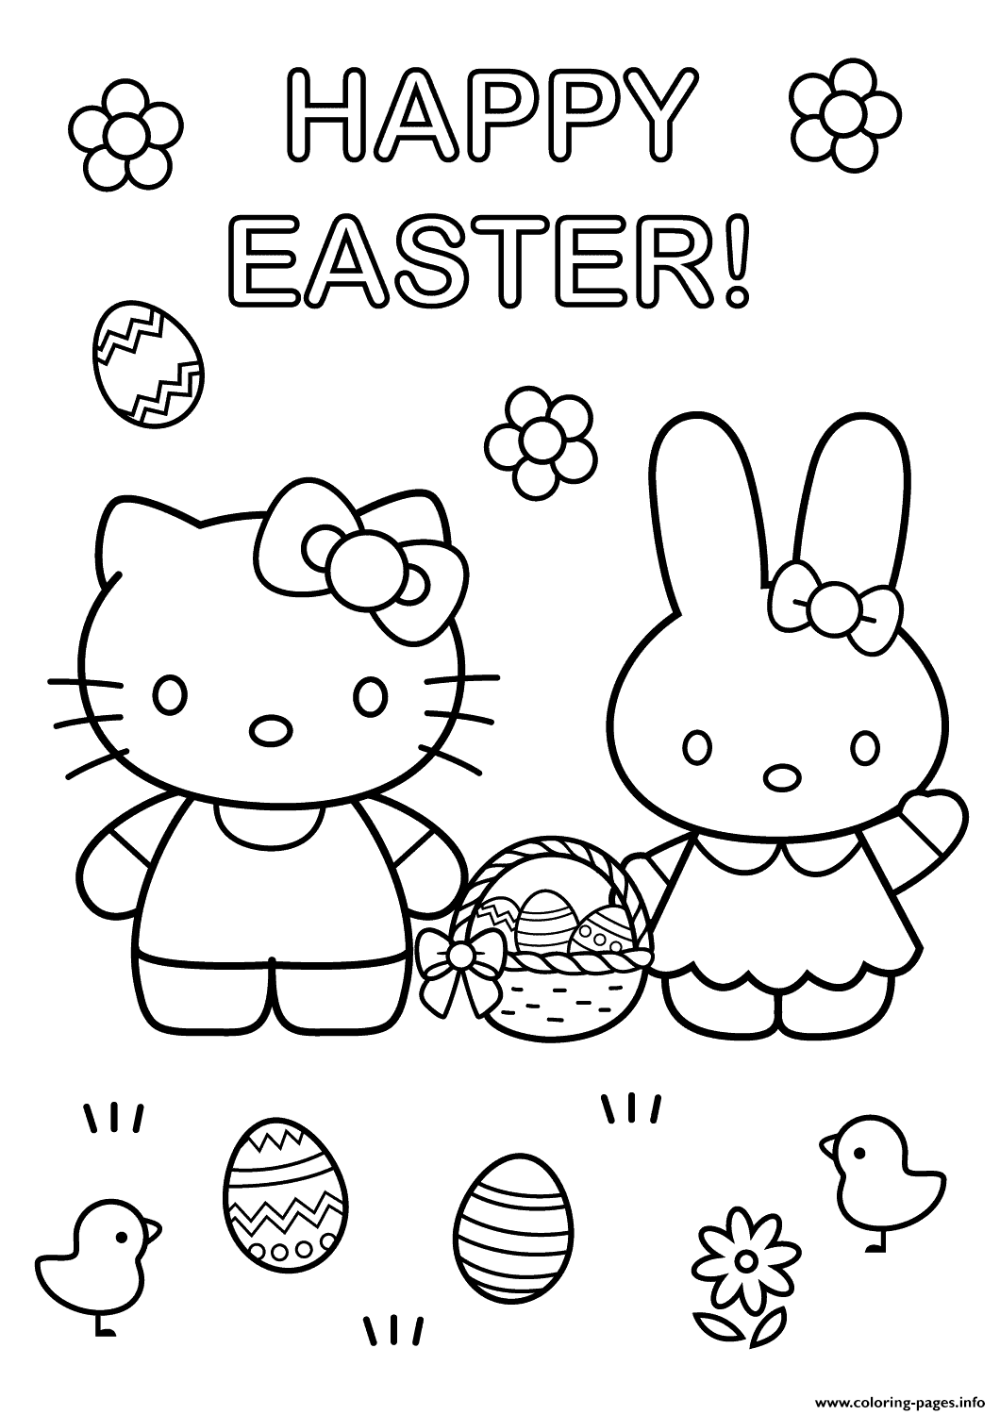 hello kitty spring coloring pages hello kitty easter bunny coloring pages cartoons kitty coloring pages hello spring